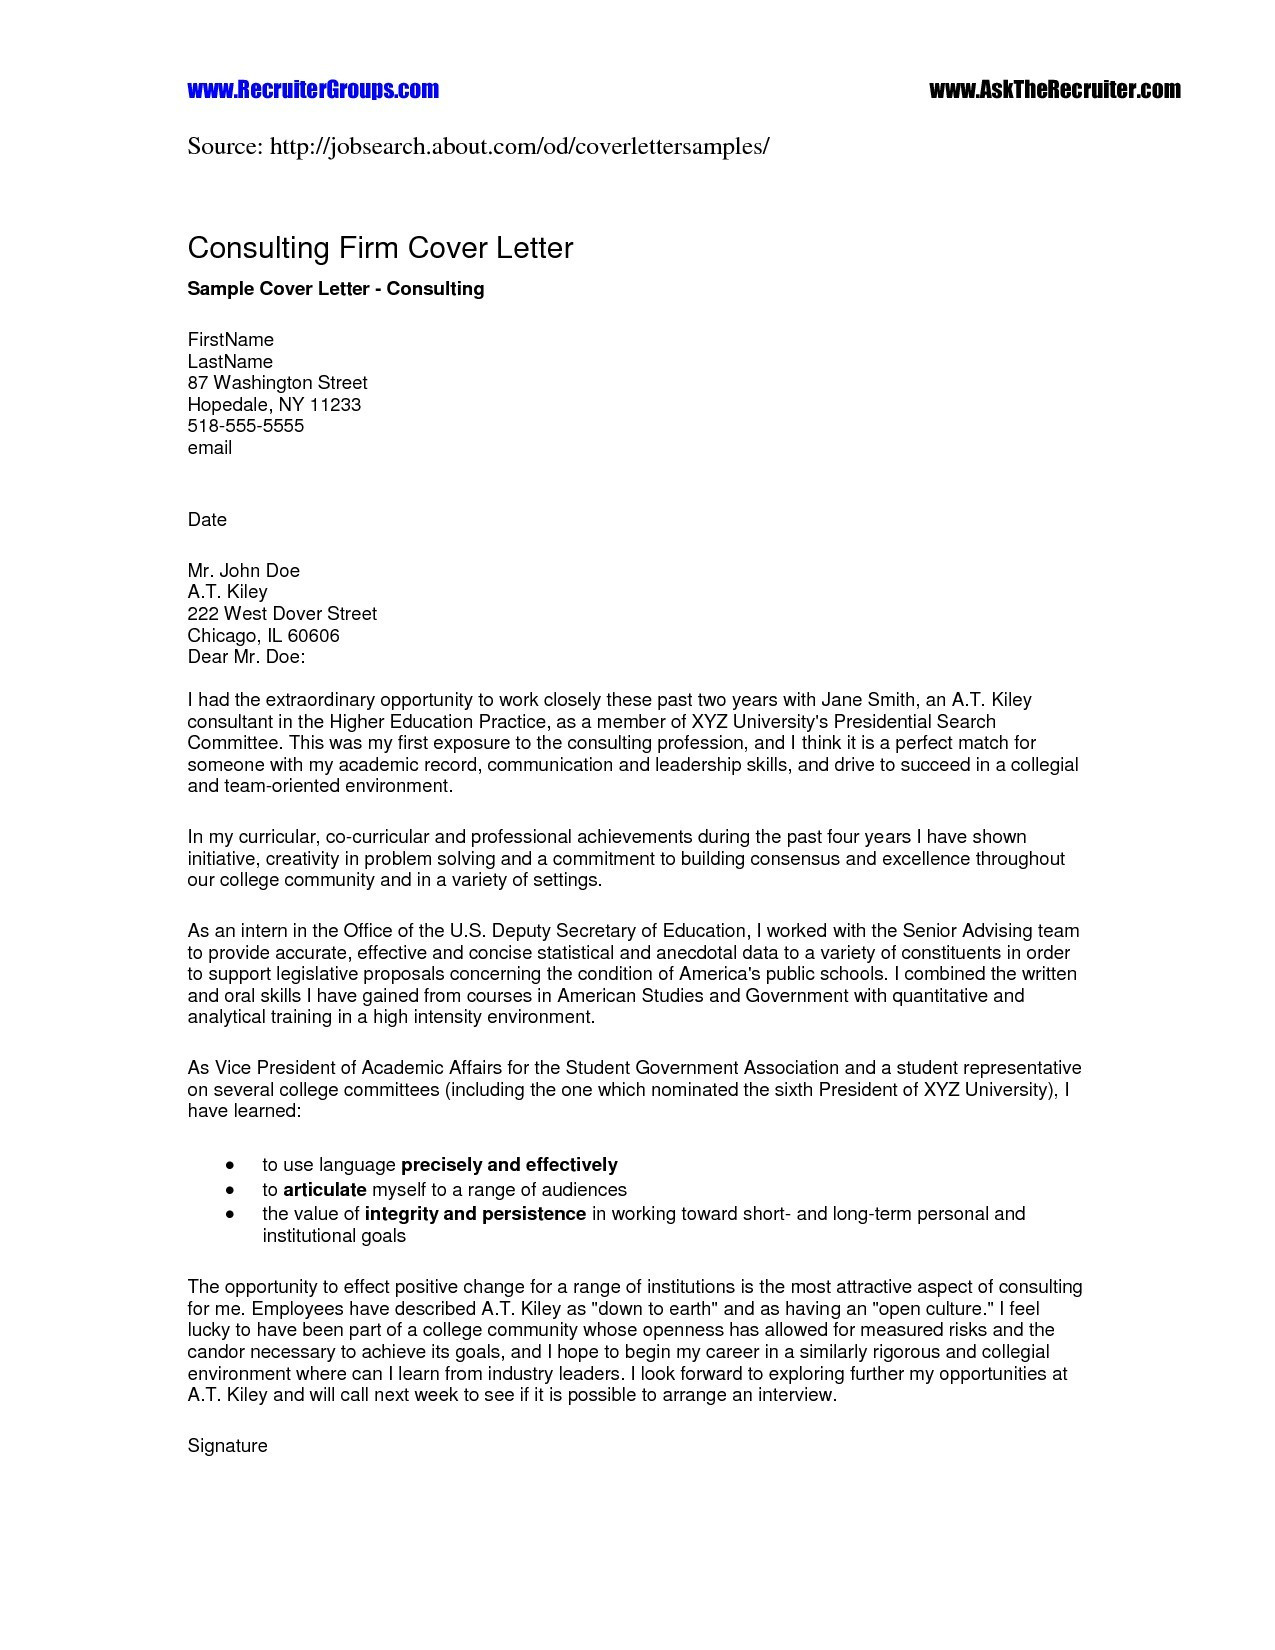 Audit Engagement Letter Template - Audit Engagement Letter Sample Unique Engagement Letter Template Uk